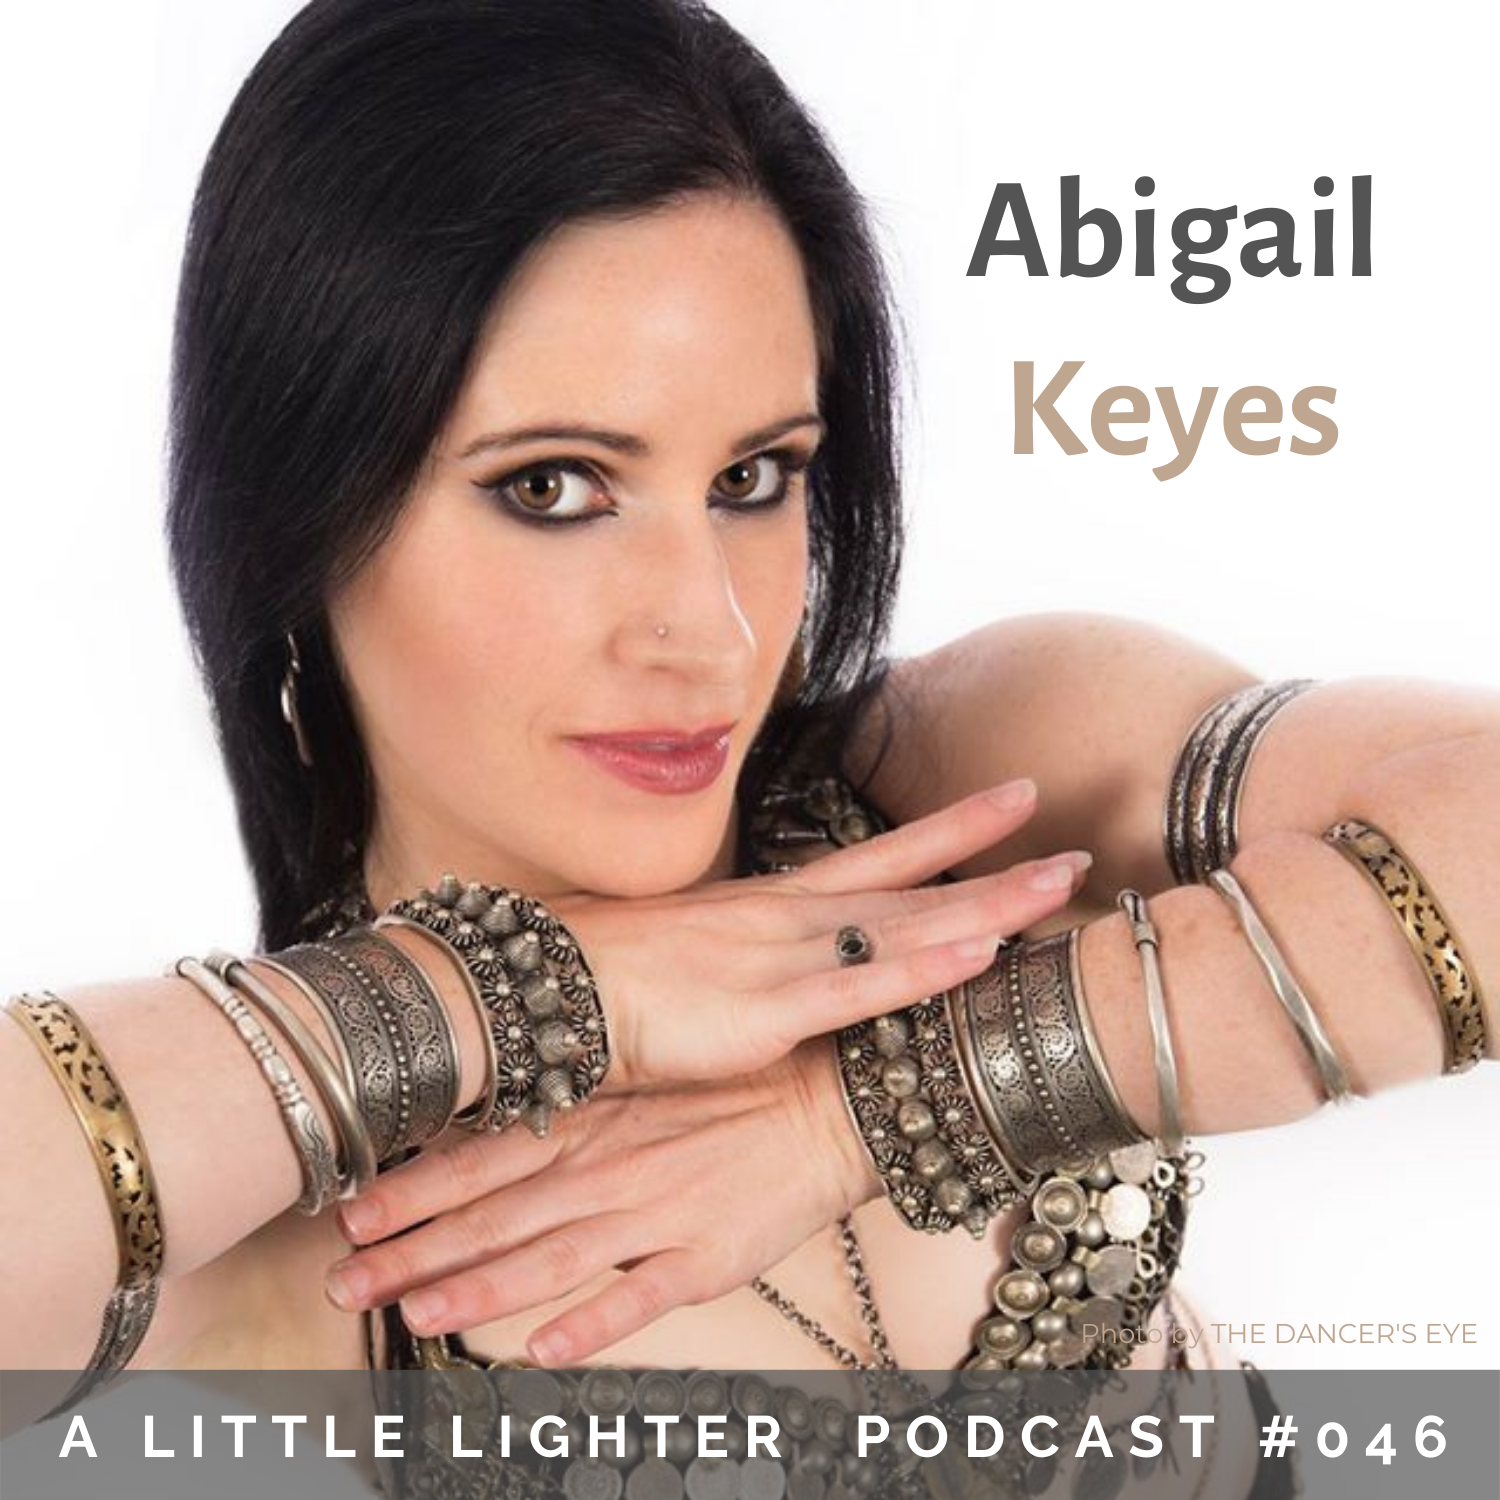 Belly Dance Podcast abigail keyes